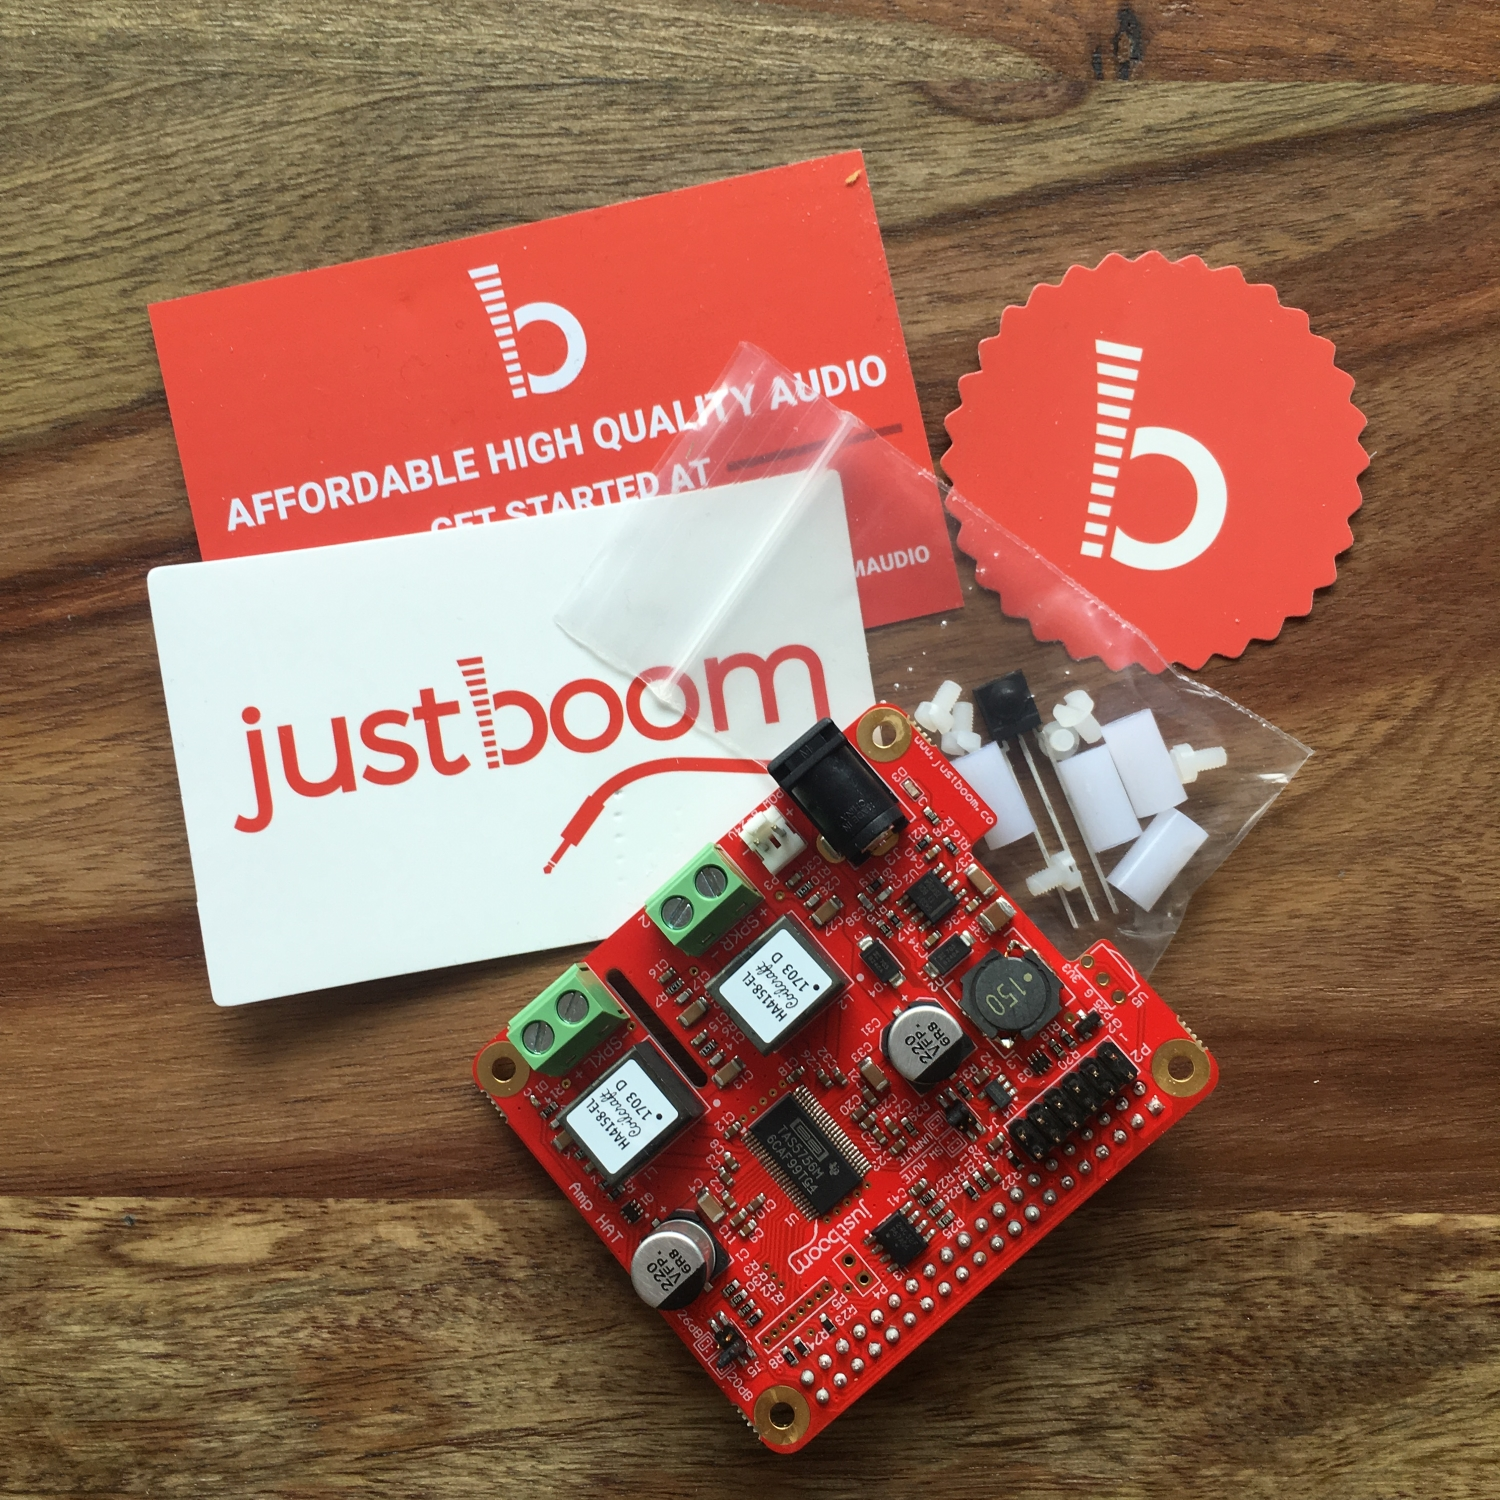 Justboom Amp DAC Hat (2)